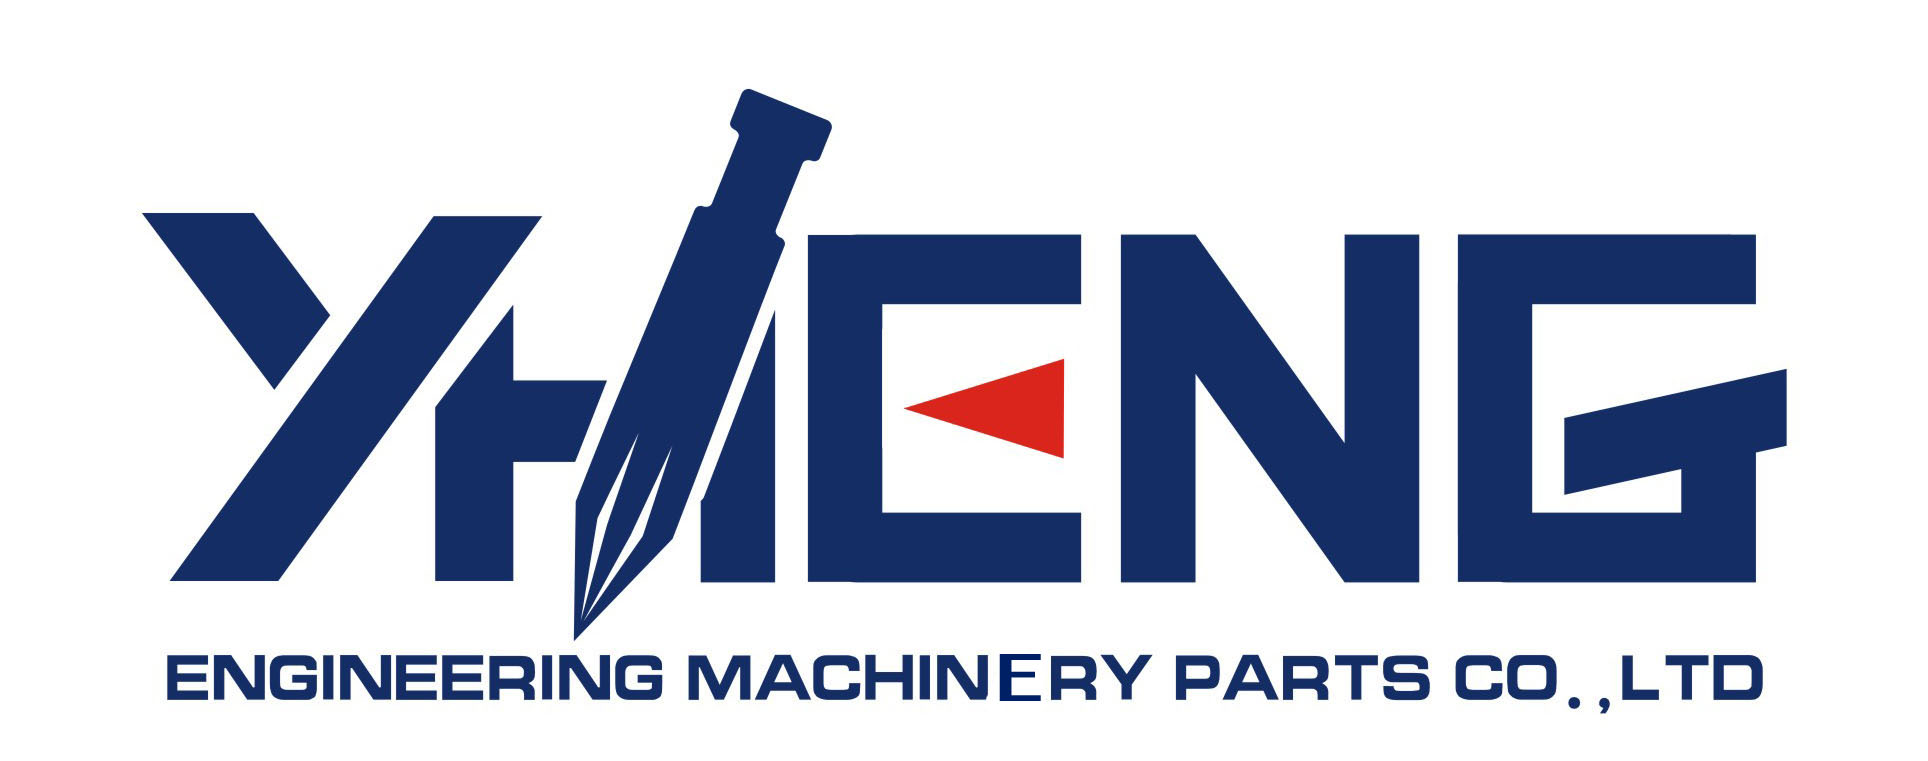 Yantai Yiheng Engineering Machinery Parts Co.,Ltd